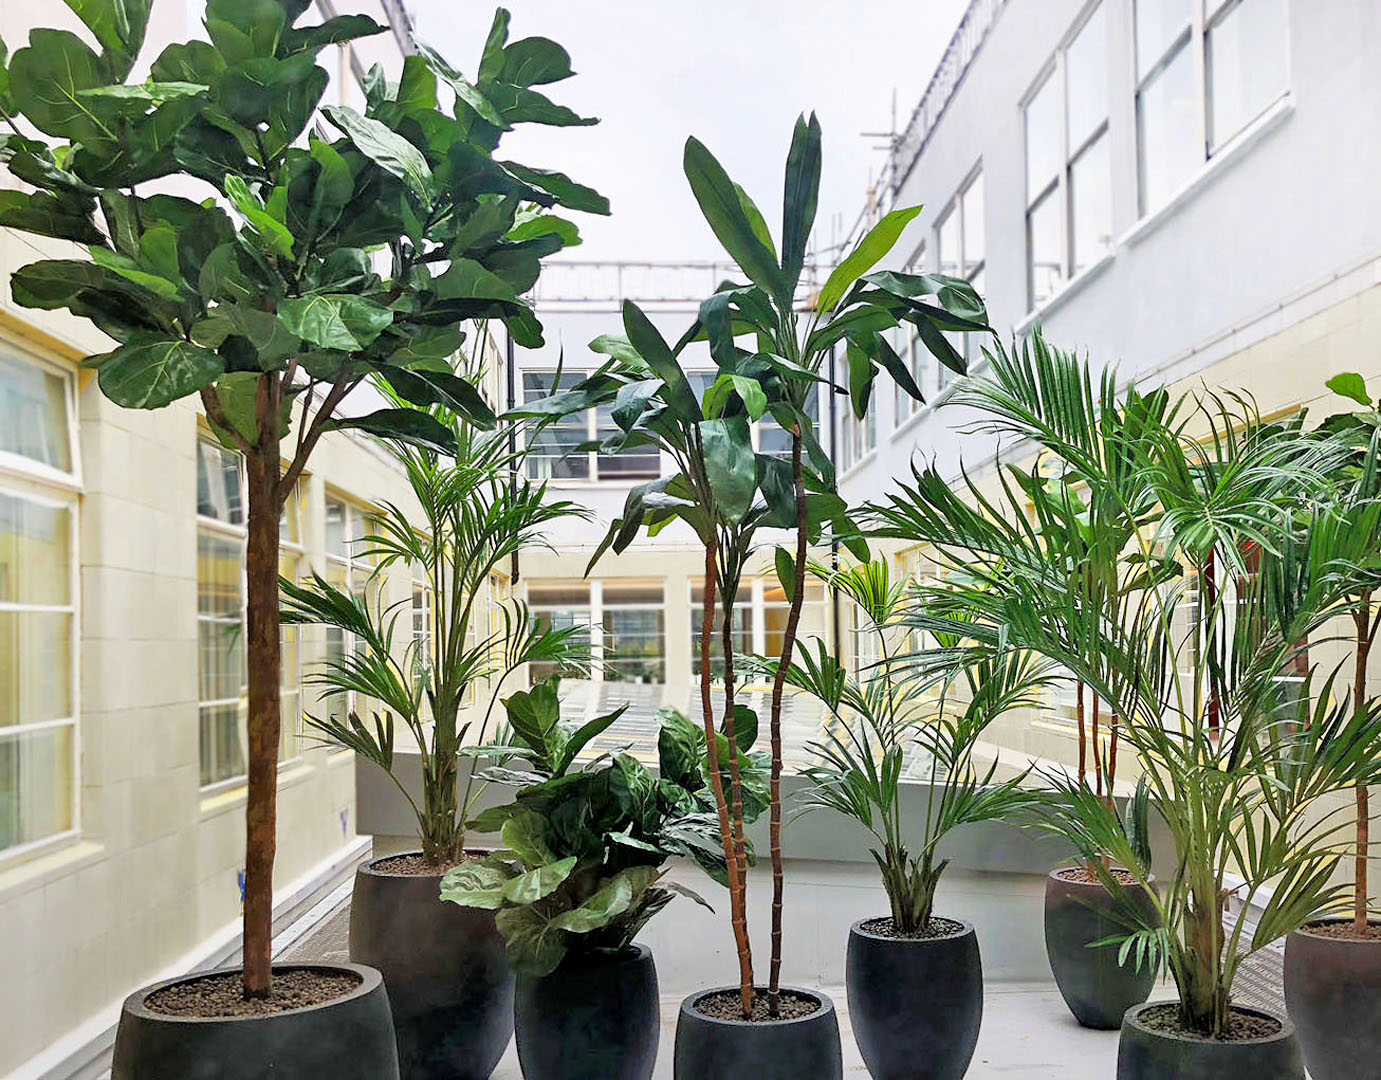 712 fake landscapes cool courtyard tree mix lyrata cordyline and palm at Selfridges